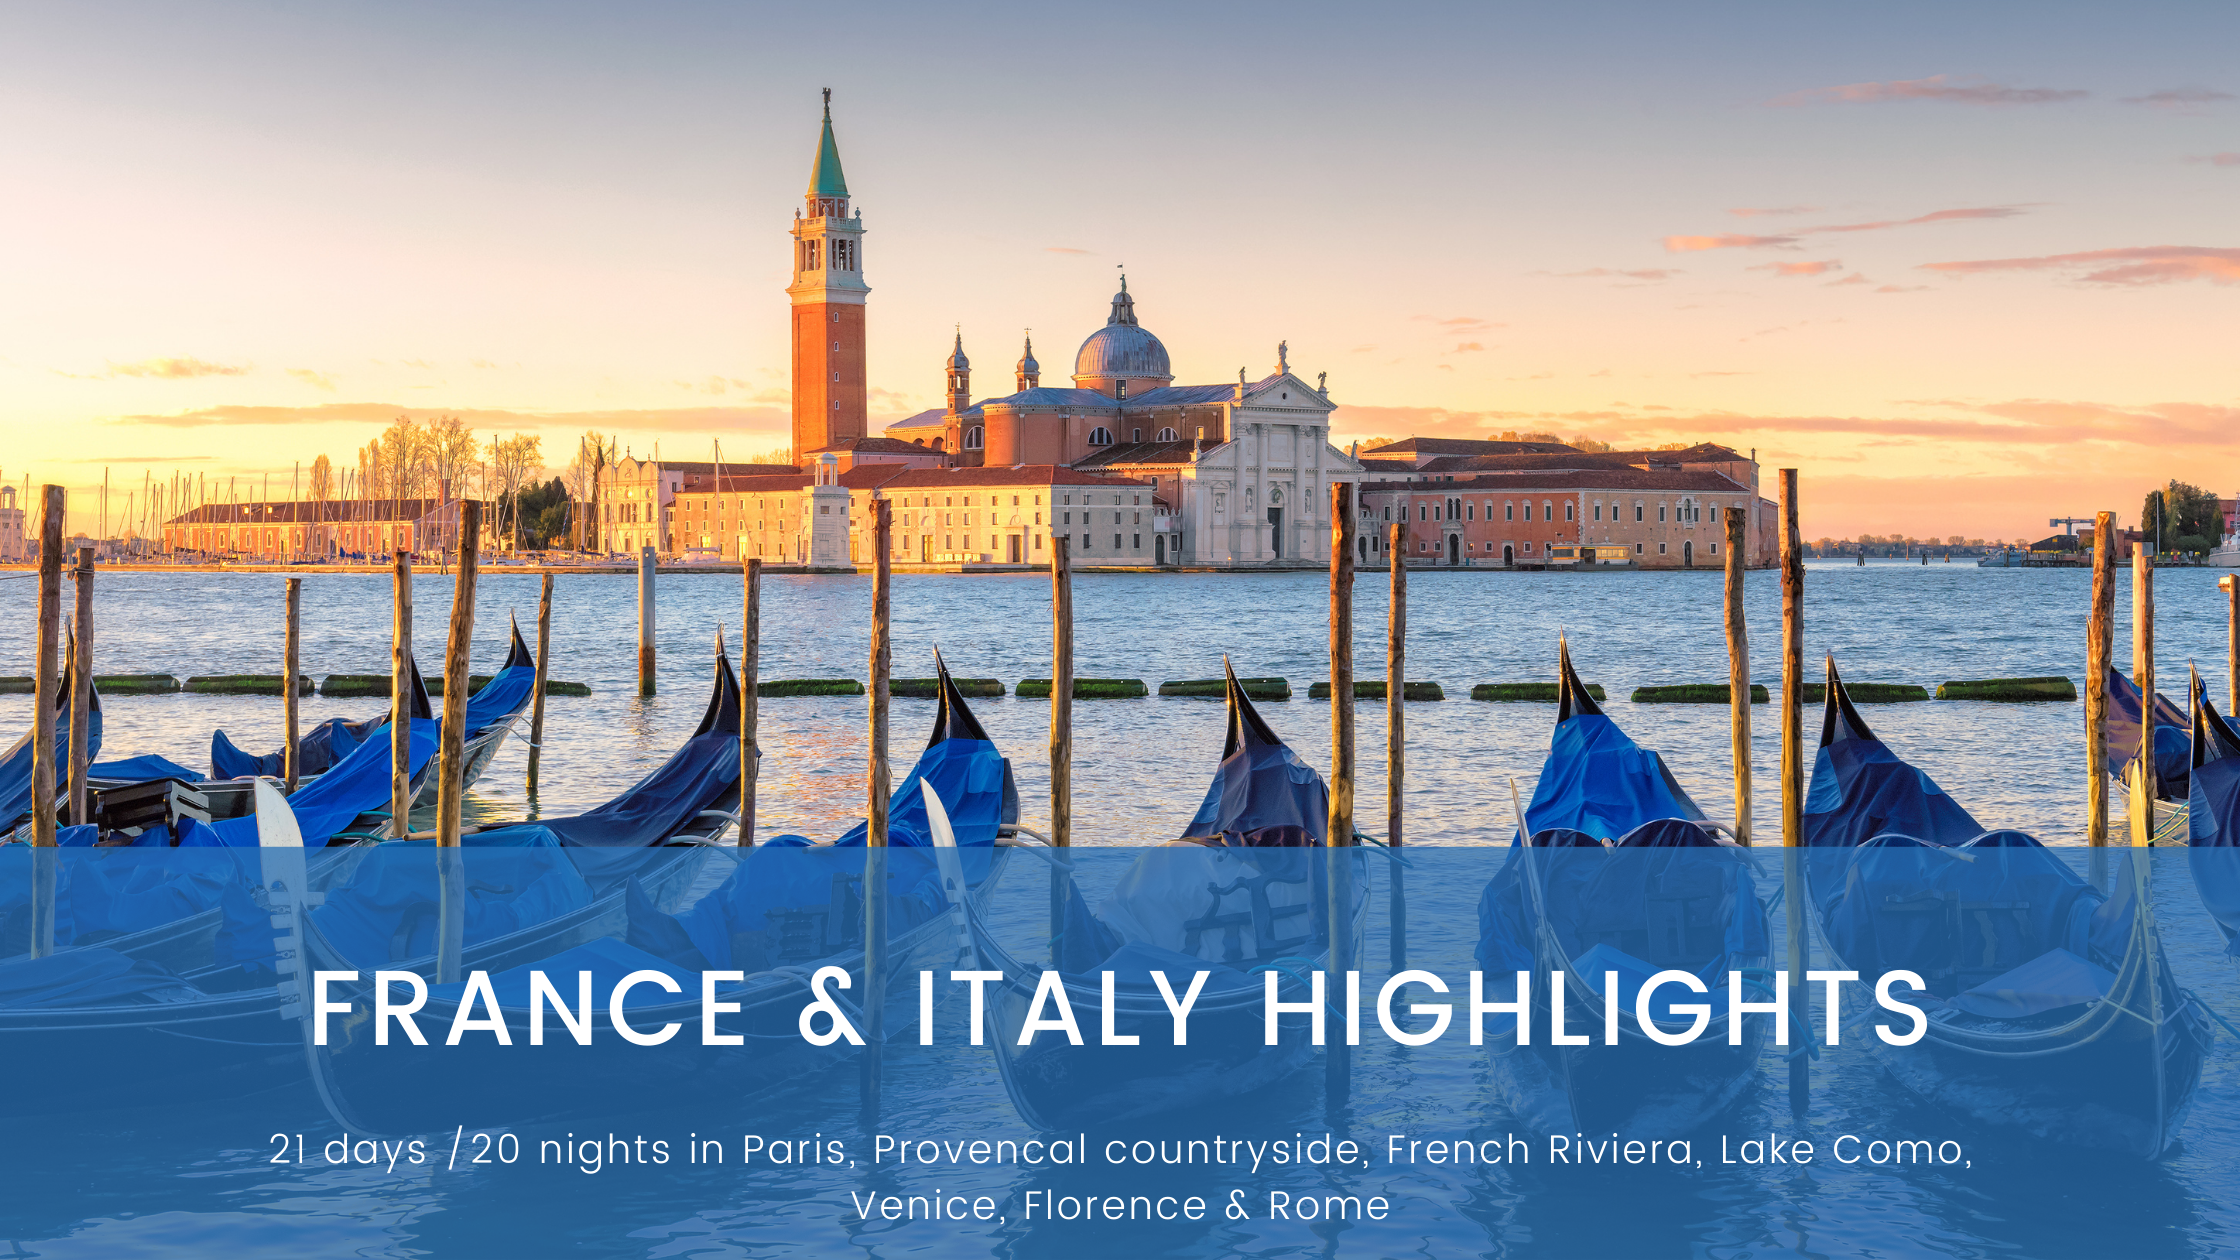 France & Italy Highlights